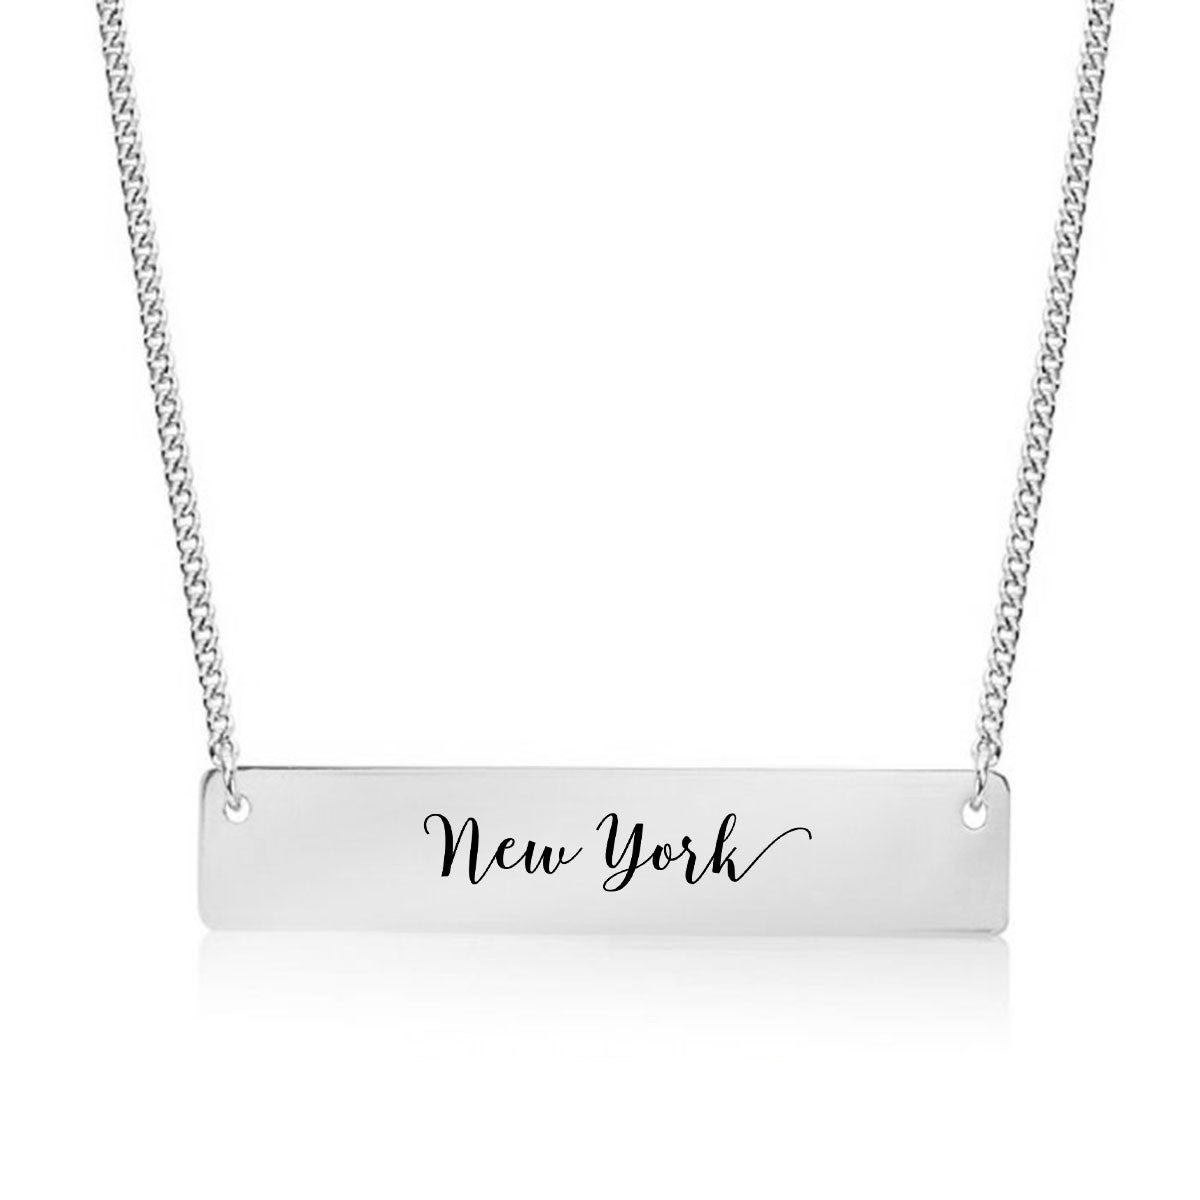 New York Gold / Silver Bar Necklace